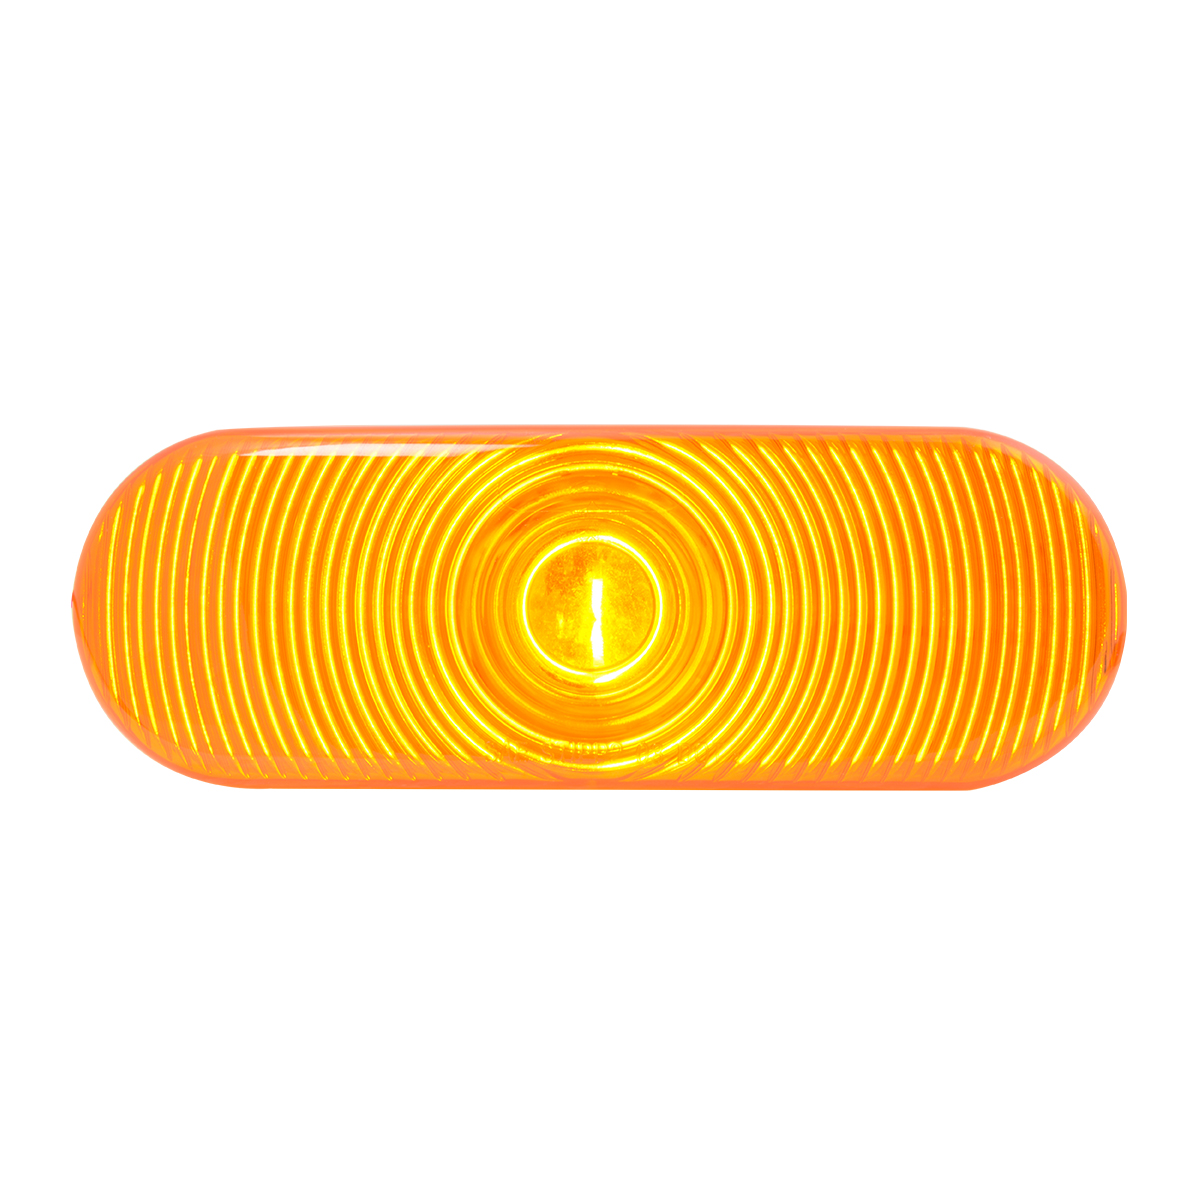 #80800 Incandescent Flat Oval Sealed Light - Amber/Amber